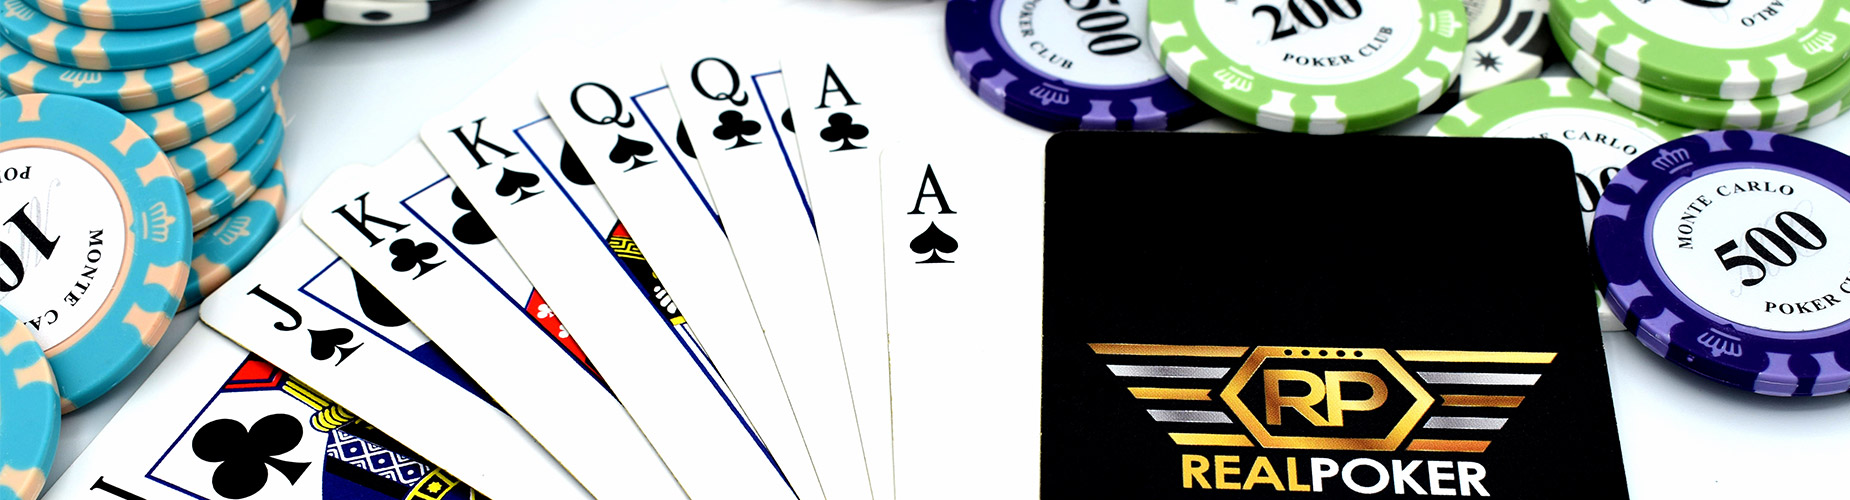 Real Poker India Image Shoot